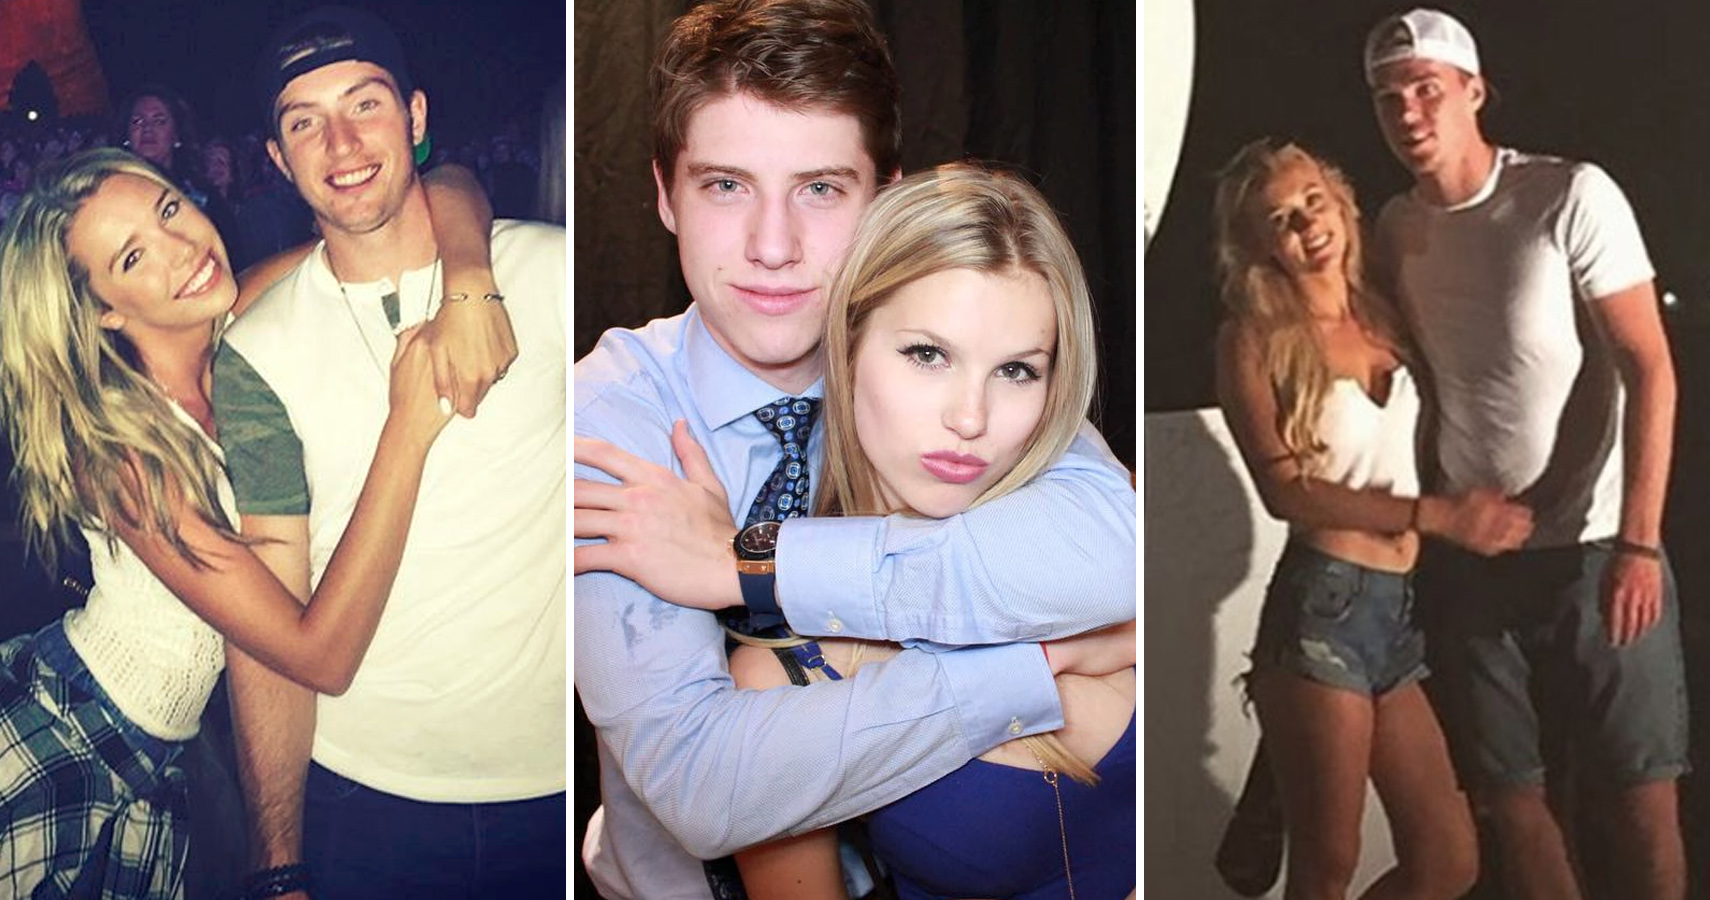 15 hockey players you didnt know have hot girlfriends